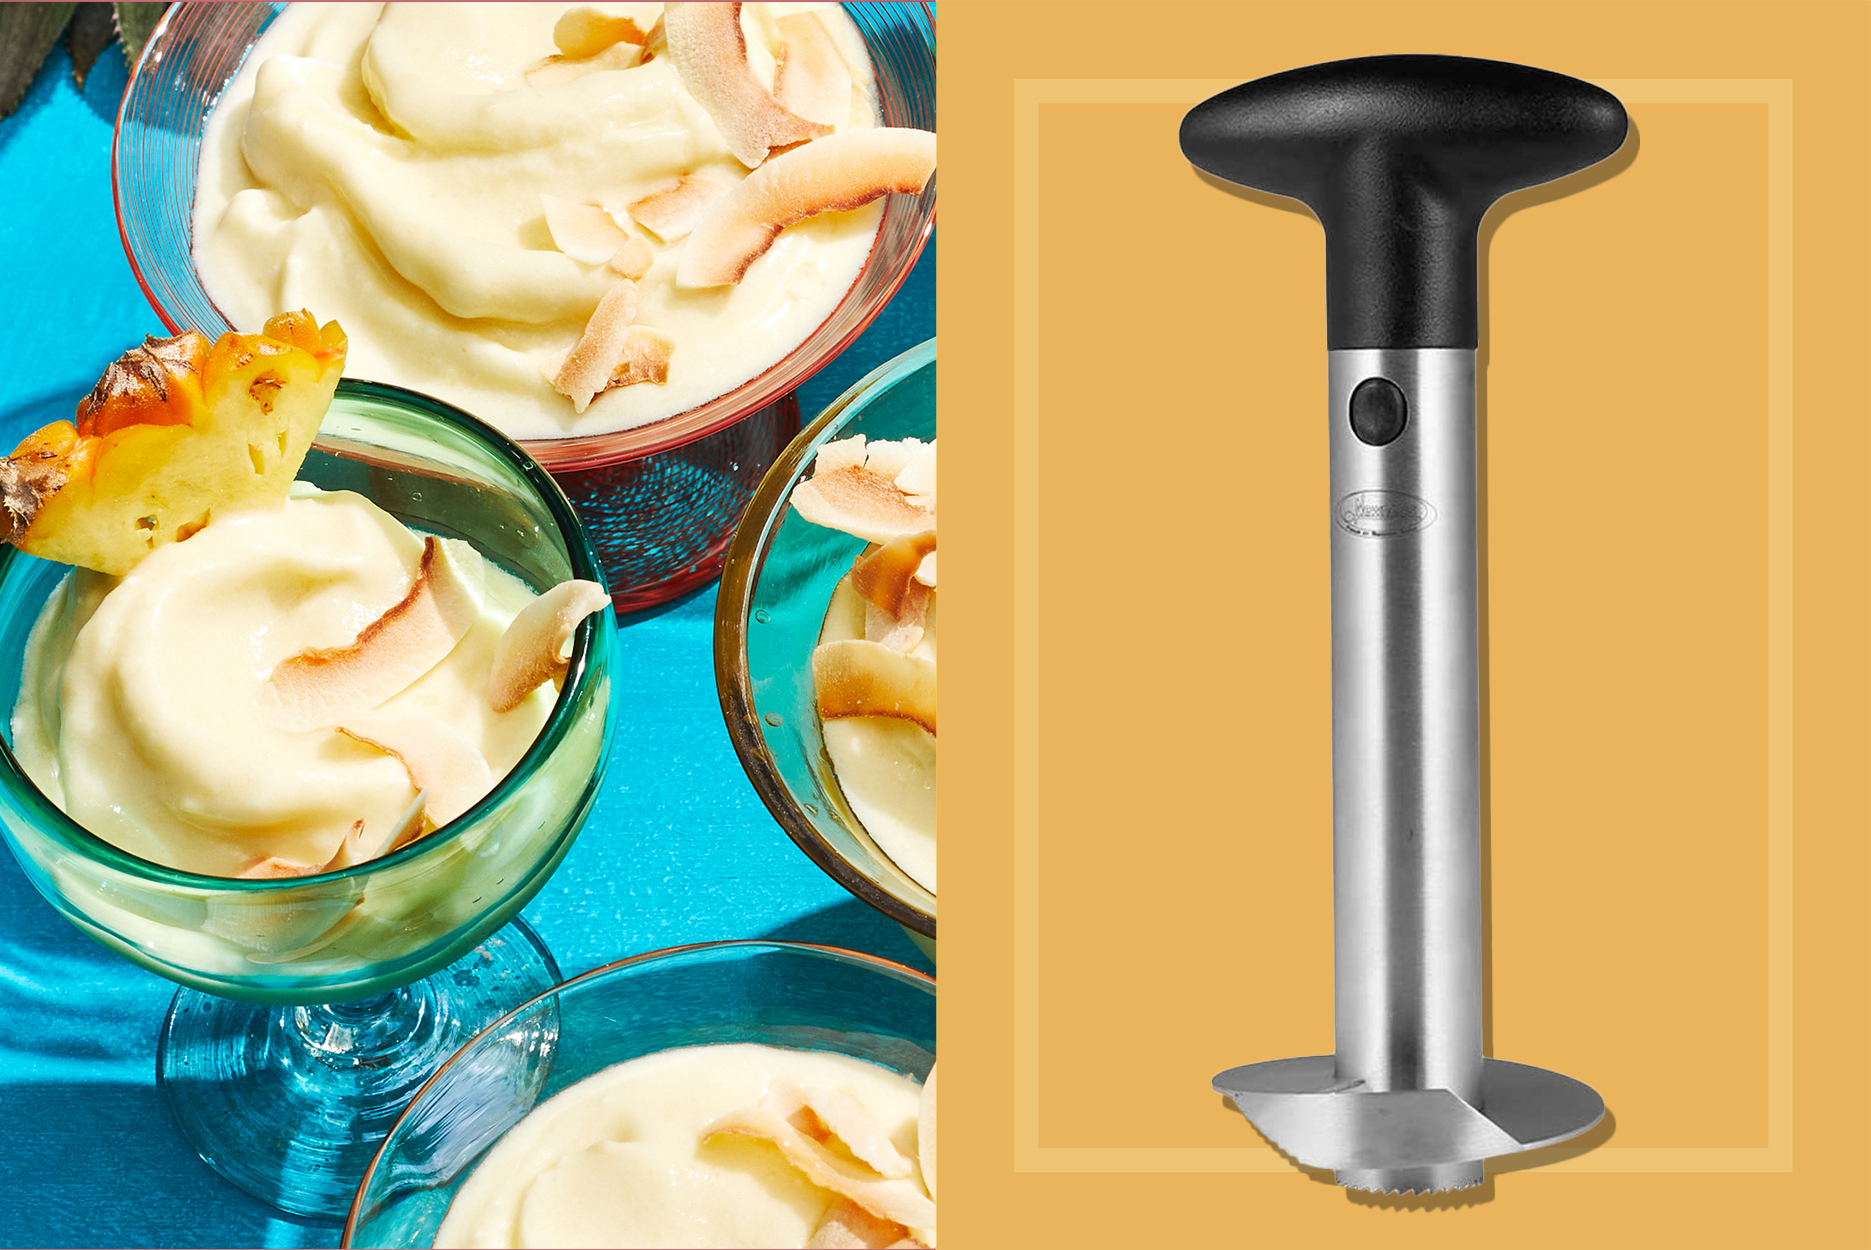 Summer Fruit Cooking Tools | Pineapple Corer